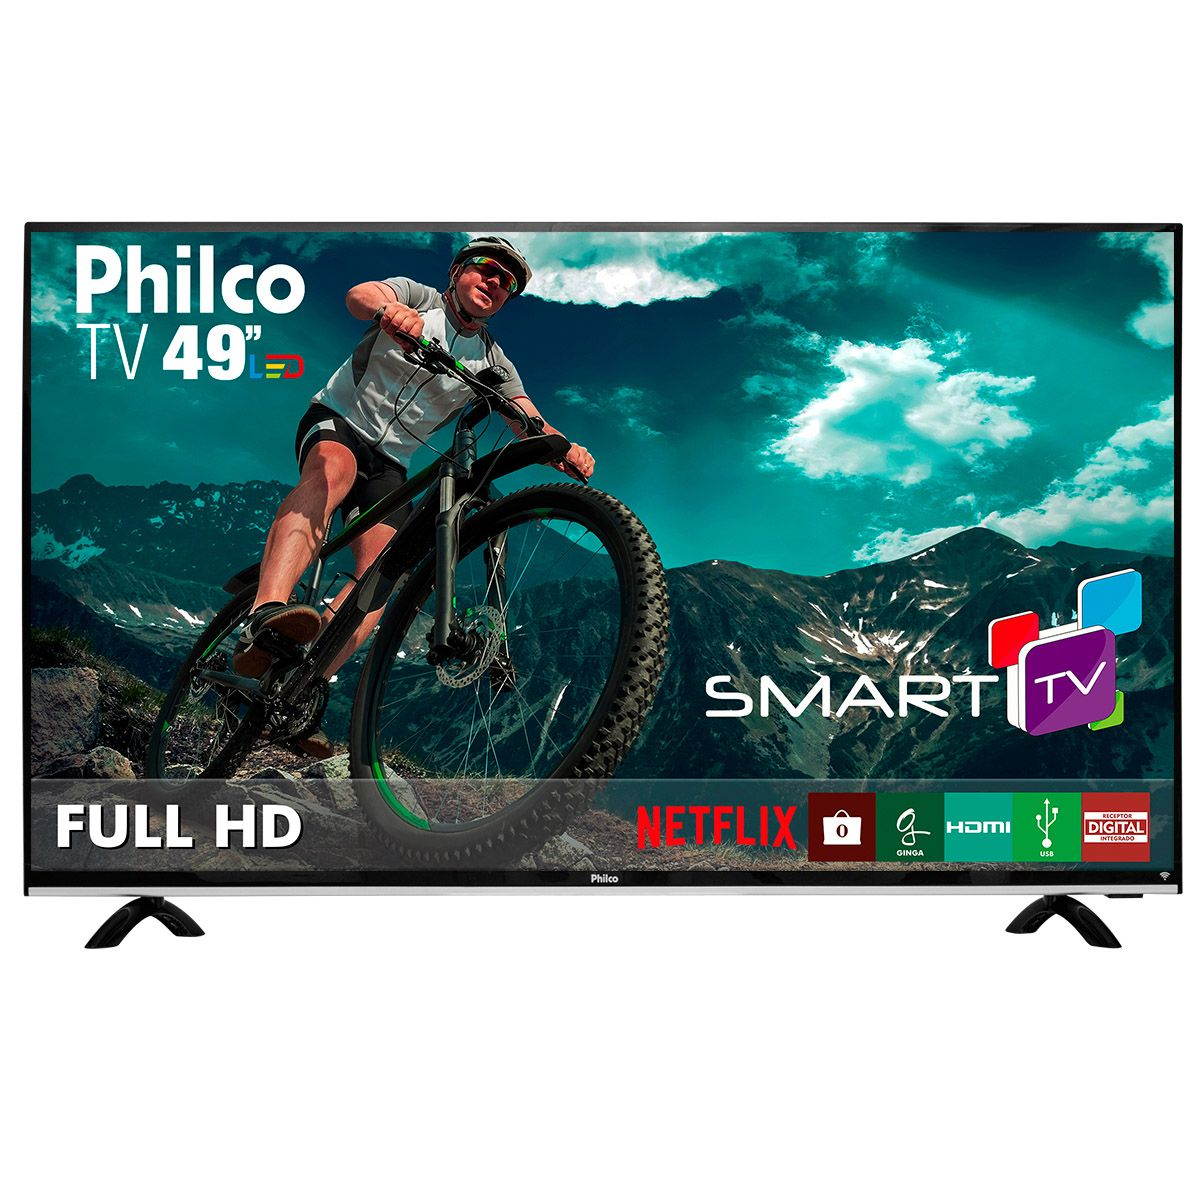 "Smart TV LED 49"" Philco Full HD com Conversor Digital 3 HDMI 1 USB Wi-Fi 60Hz - Preta -  PTV49e68dSWN"